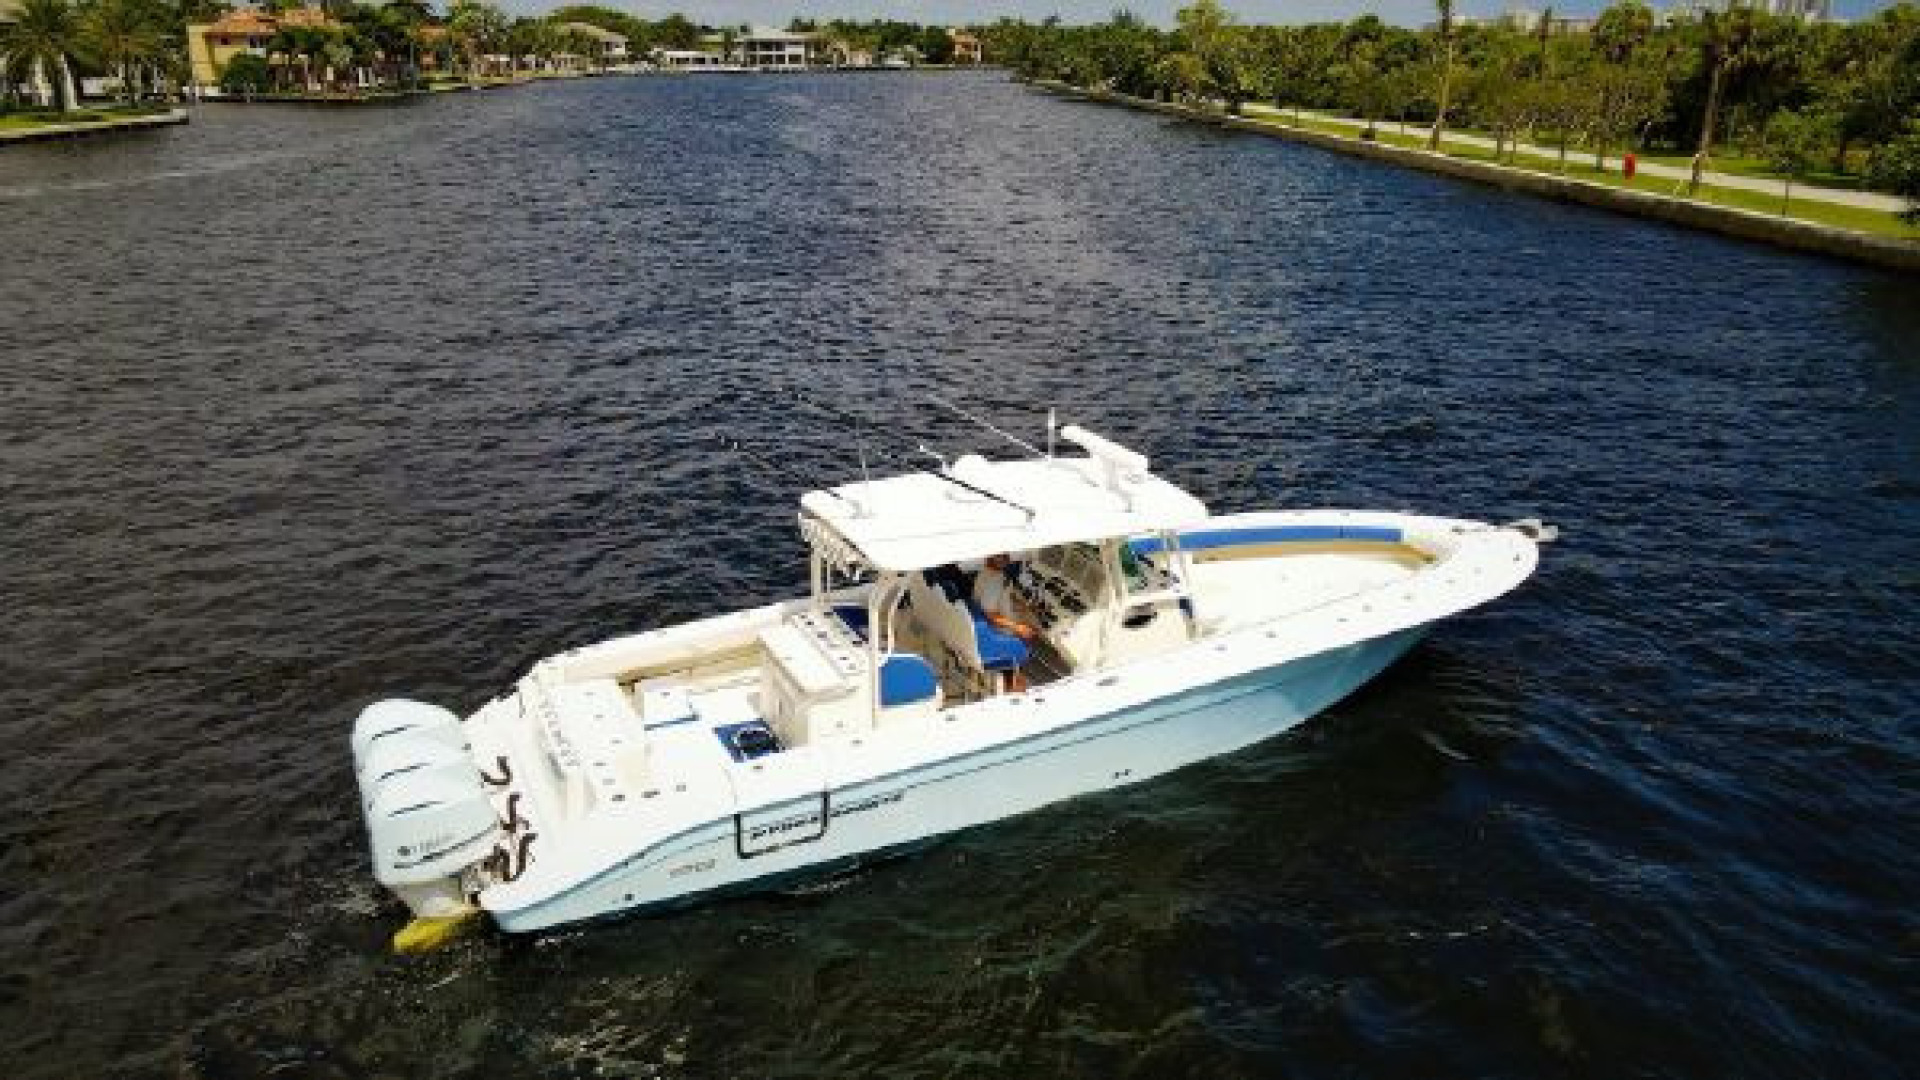 Hydra-Sports-42 Center Console 4200 SF 2011 -Fort Lauderdale-Florida-United States-1564150 | Thumbnail